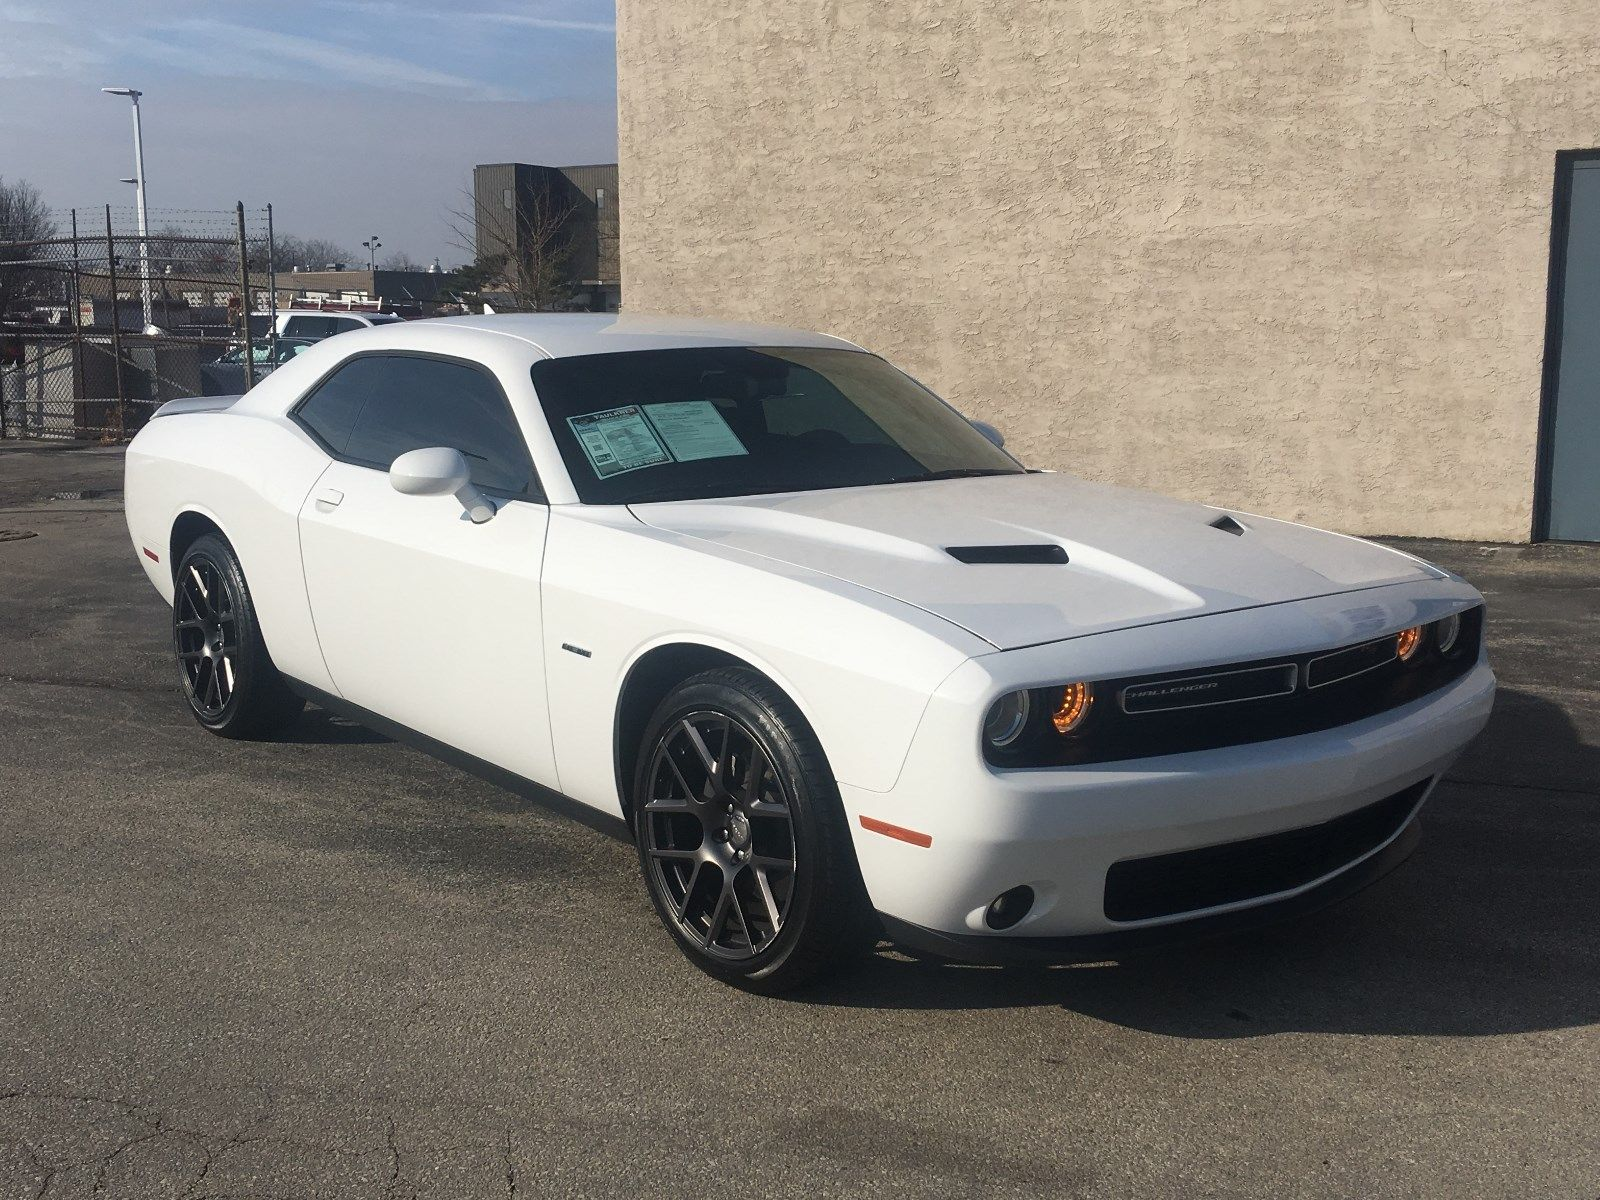 Awesome 2016 Dodge Challenger White R T Plus Coupe 5 7 V8 Hemi 1 Owner Clean Carfax 2017 2018